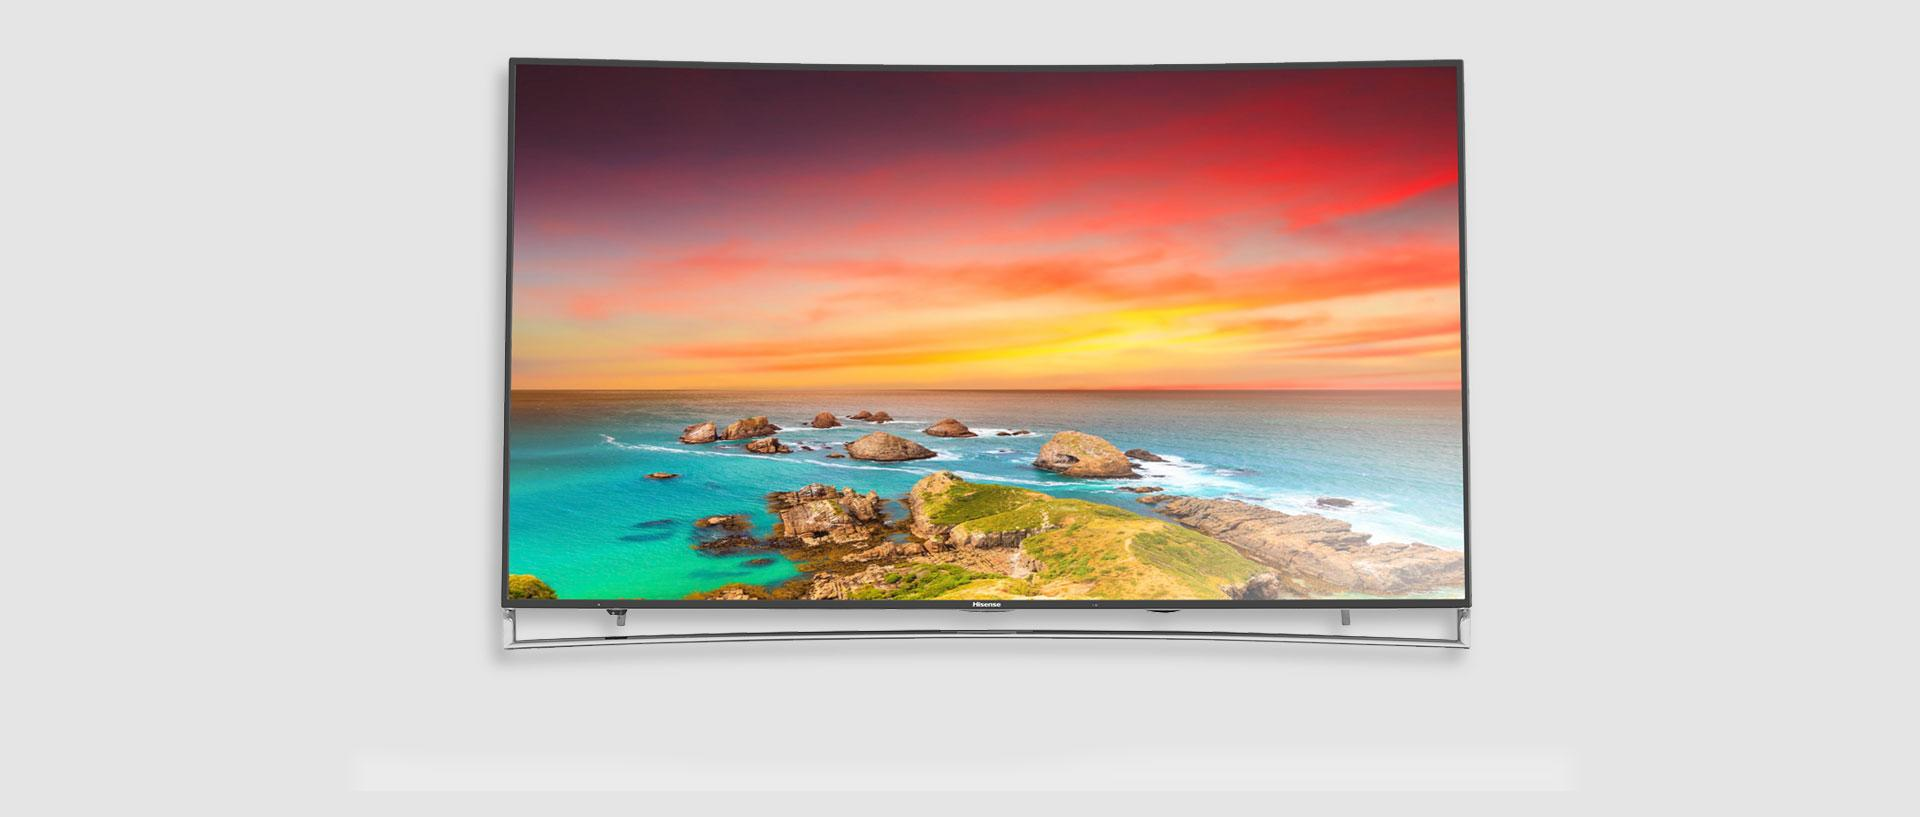 Hisense's ULED Answer to OLED TV